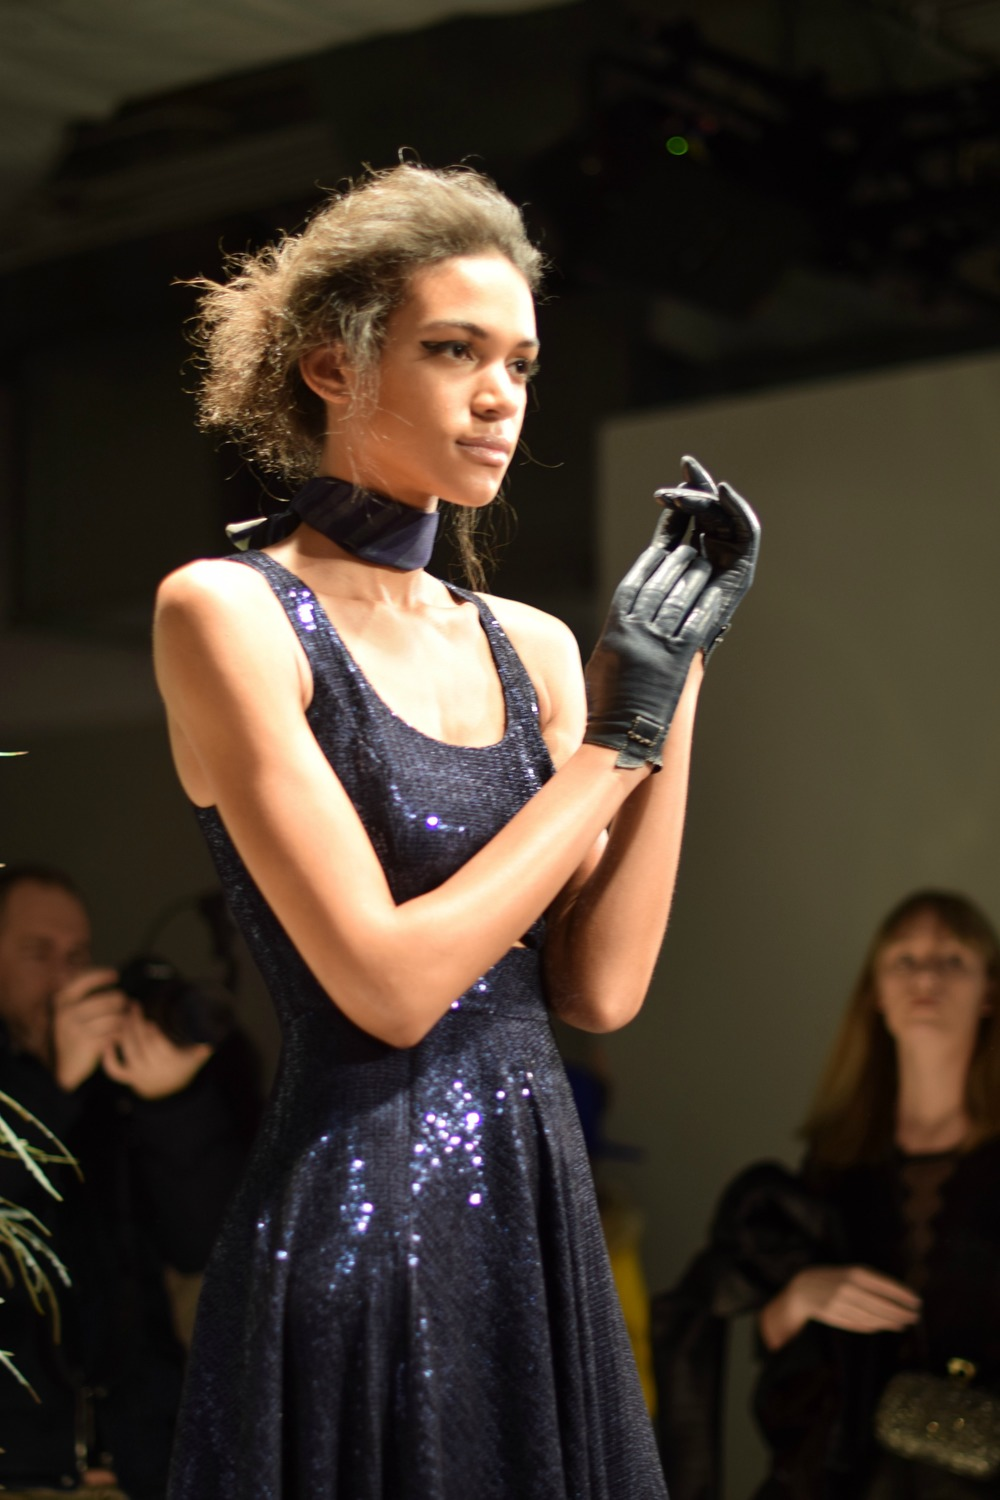 NYFW Jay Godfrey Fashion Presentation Fall:Winter 2016 Louboutins & Love Fashion Blog Esther Santer NYC Street Style Runway Models Collection Press Coverage Photos Details Dress Gown Beautiful Gorgeous Stunning Pretty Shop New York City Celebrities 3.jpg